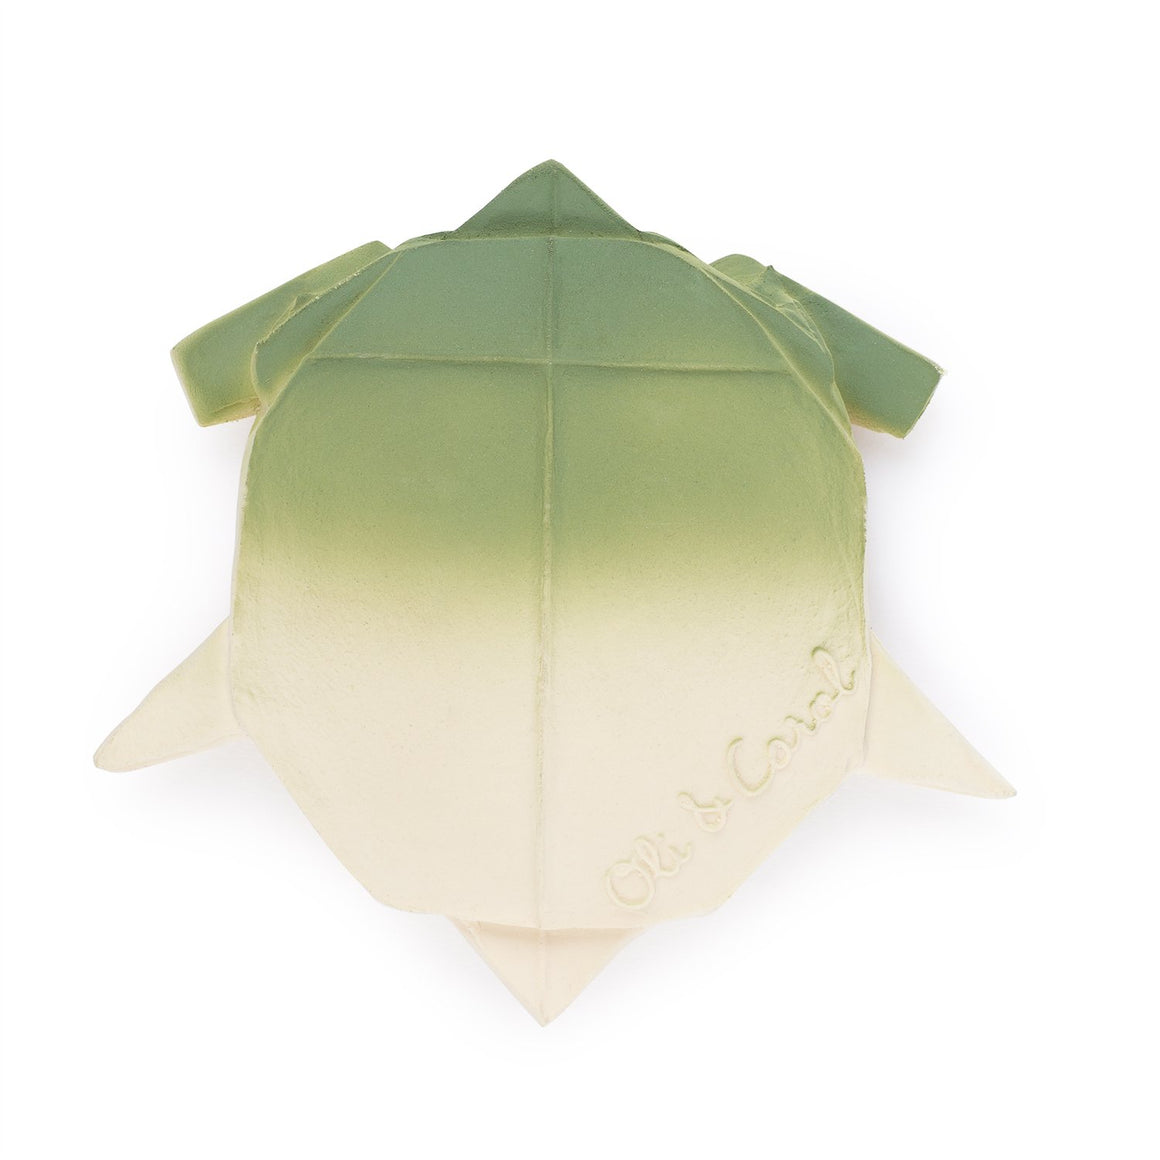 H2Origami Turtle teether / bath toy from Oli & Carol. Handmade from 100% natural rubber material and painted with food grade dyes. Made in Morocco.